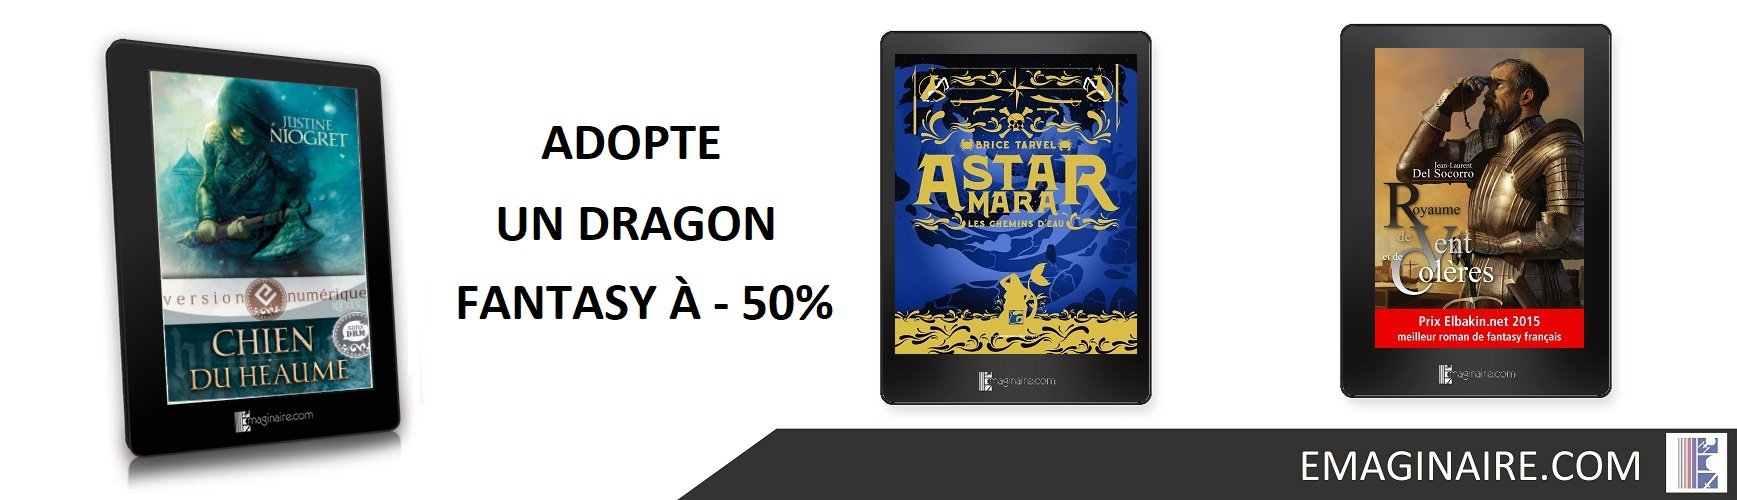 adopte dragon 01